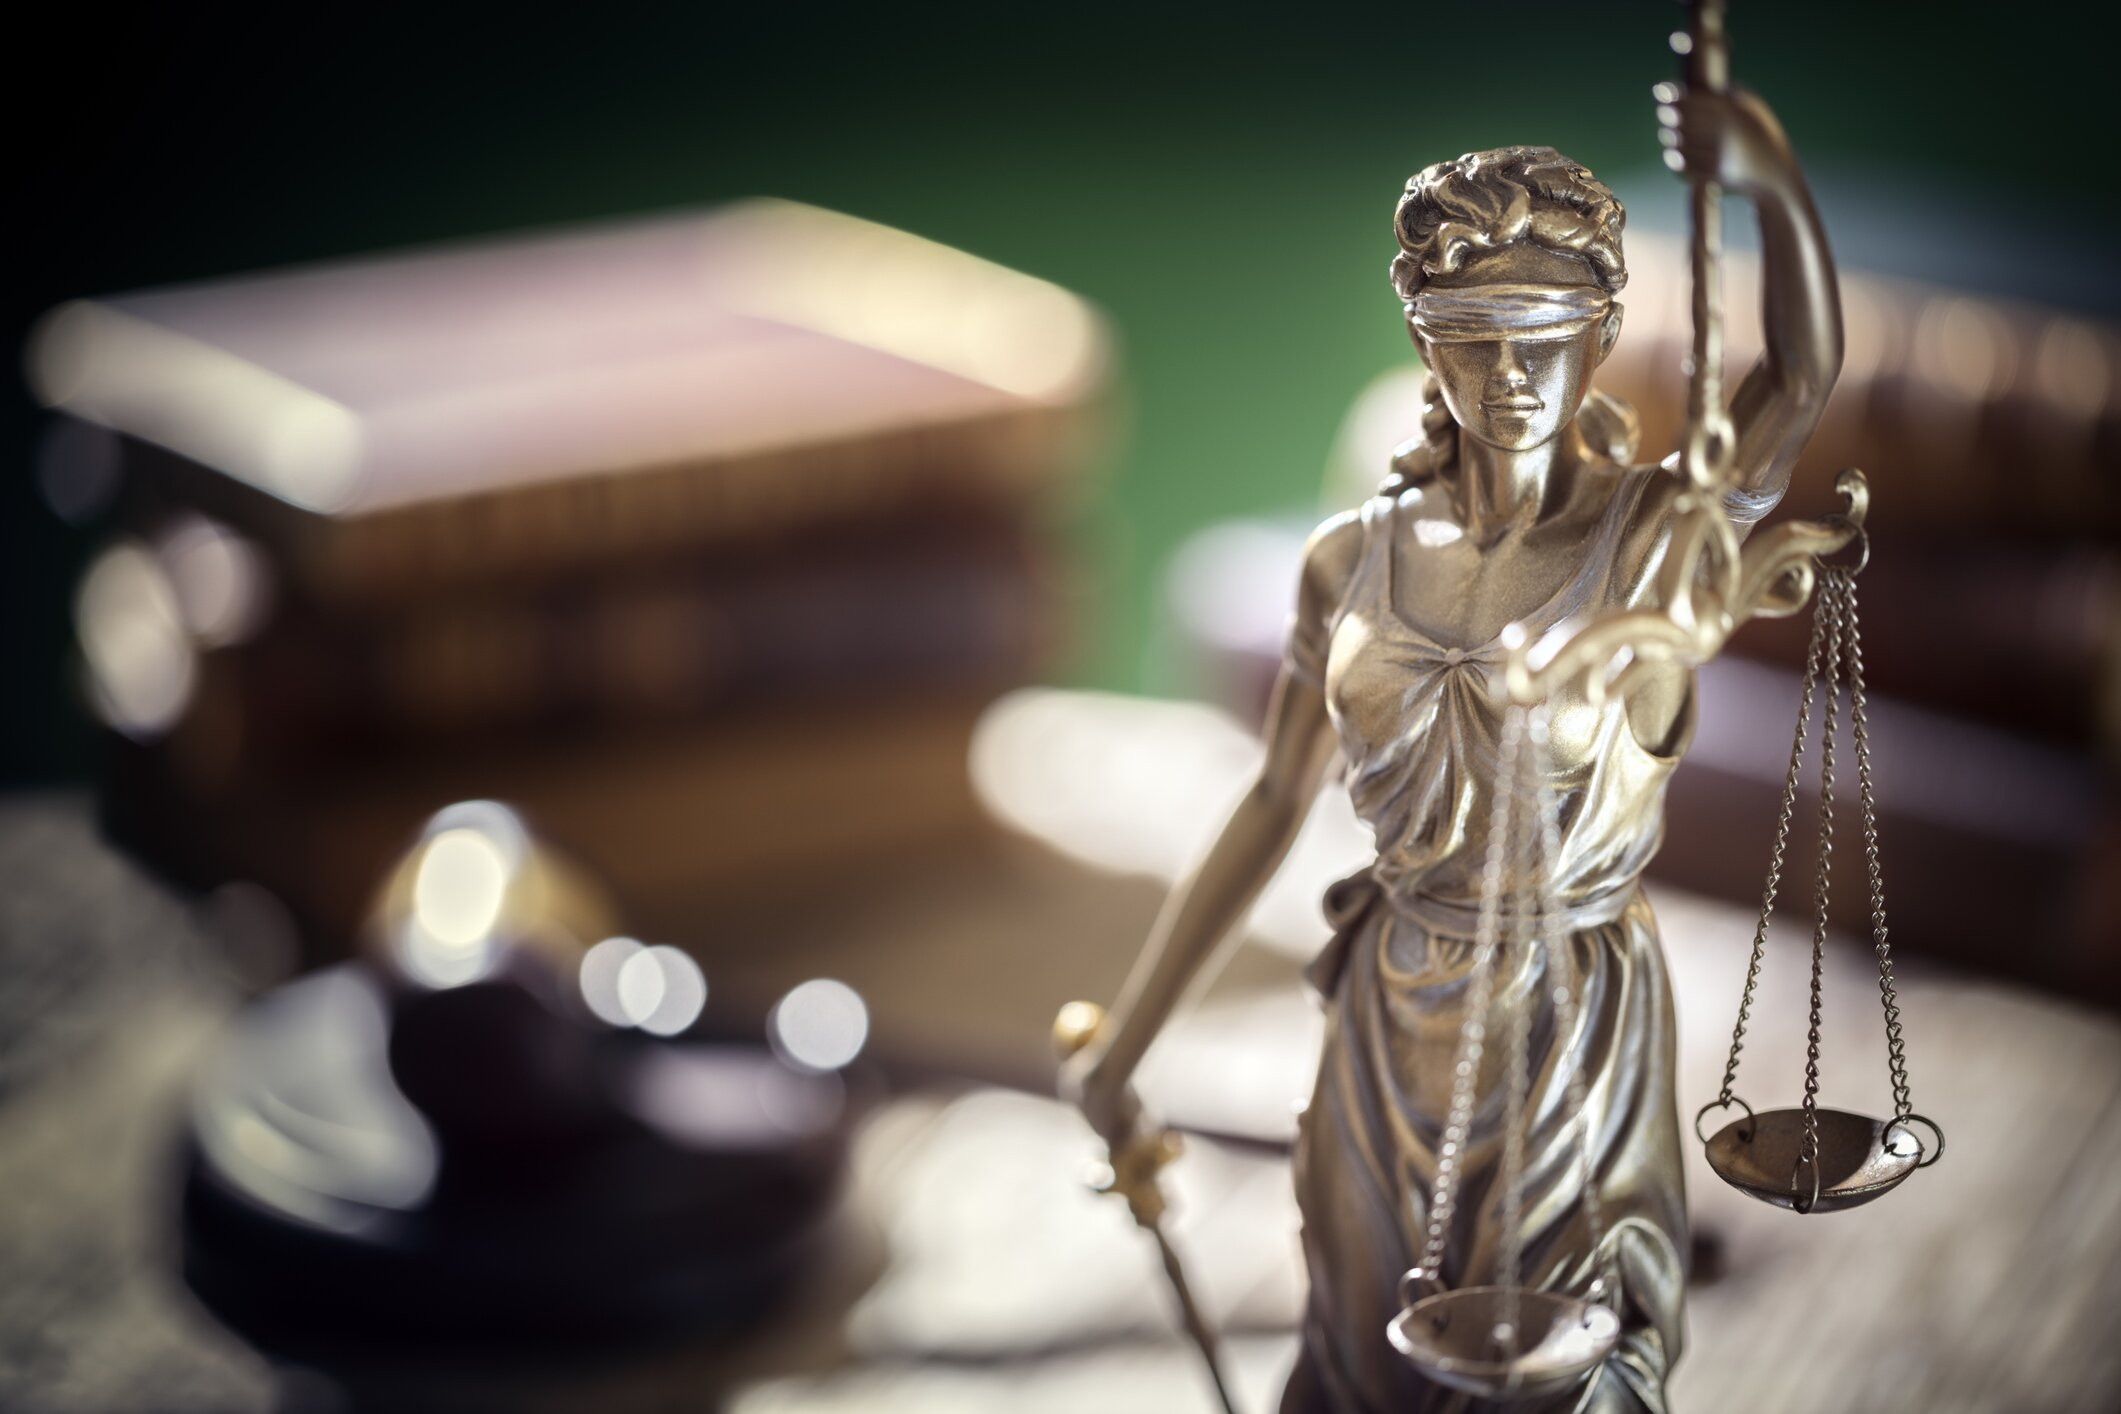 Lady justice with a gavel and books on a desk in the background